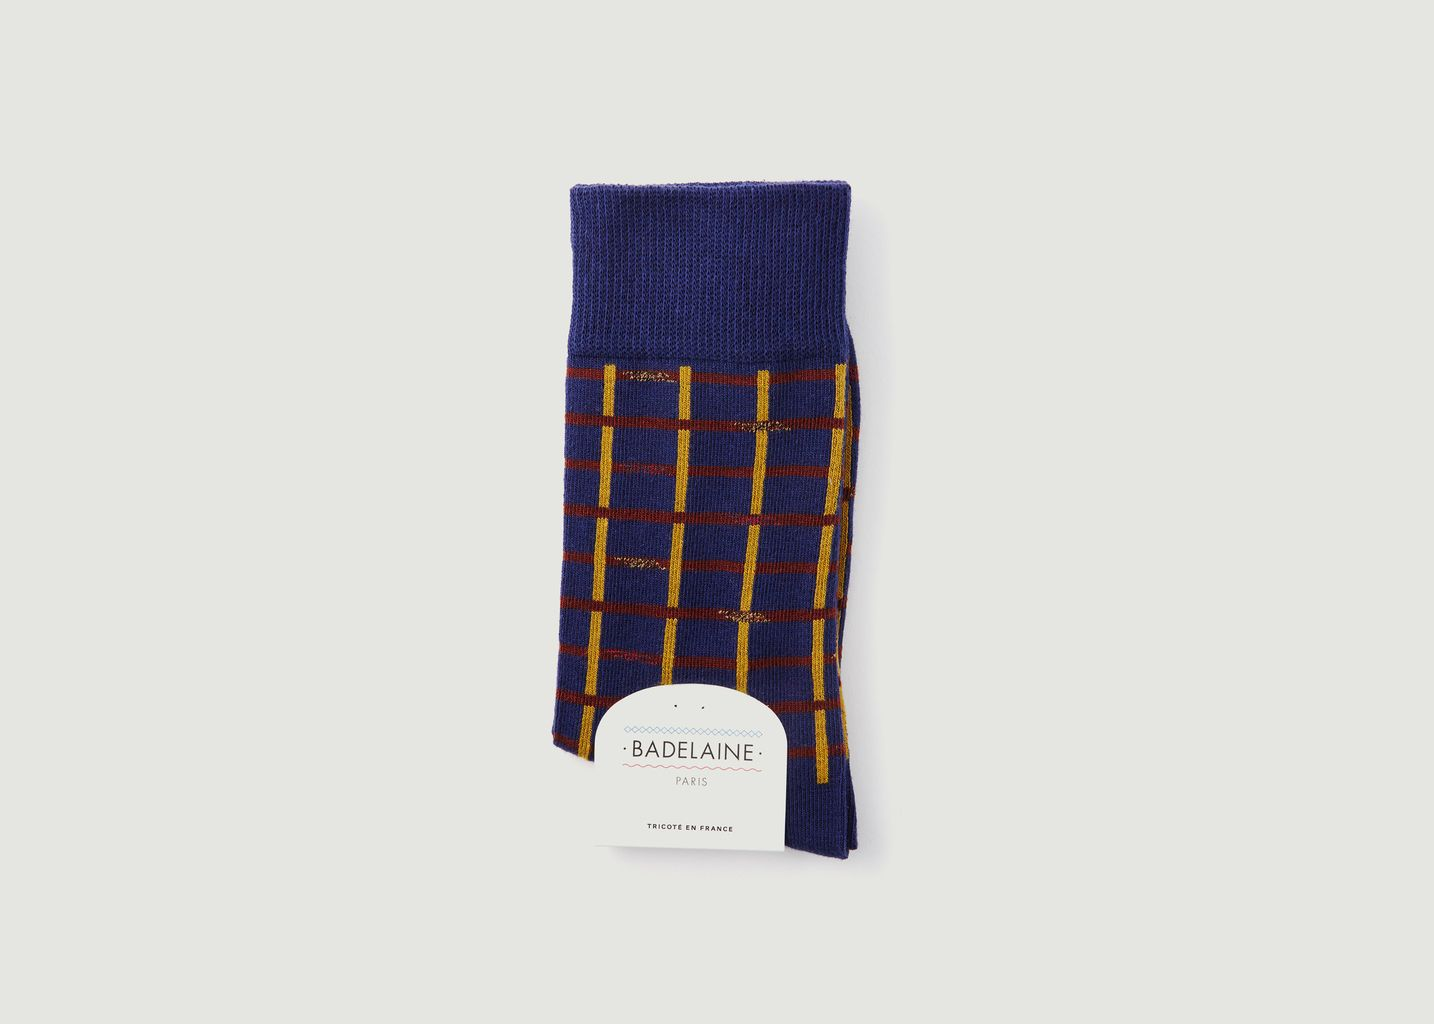 Chaussette A Carreaux Marno - Badelaine